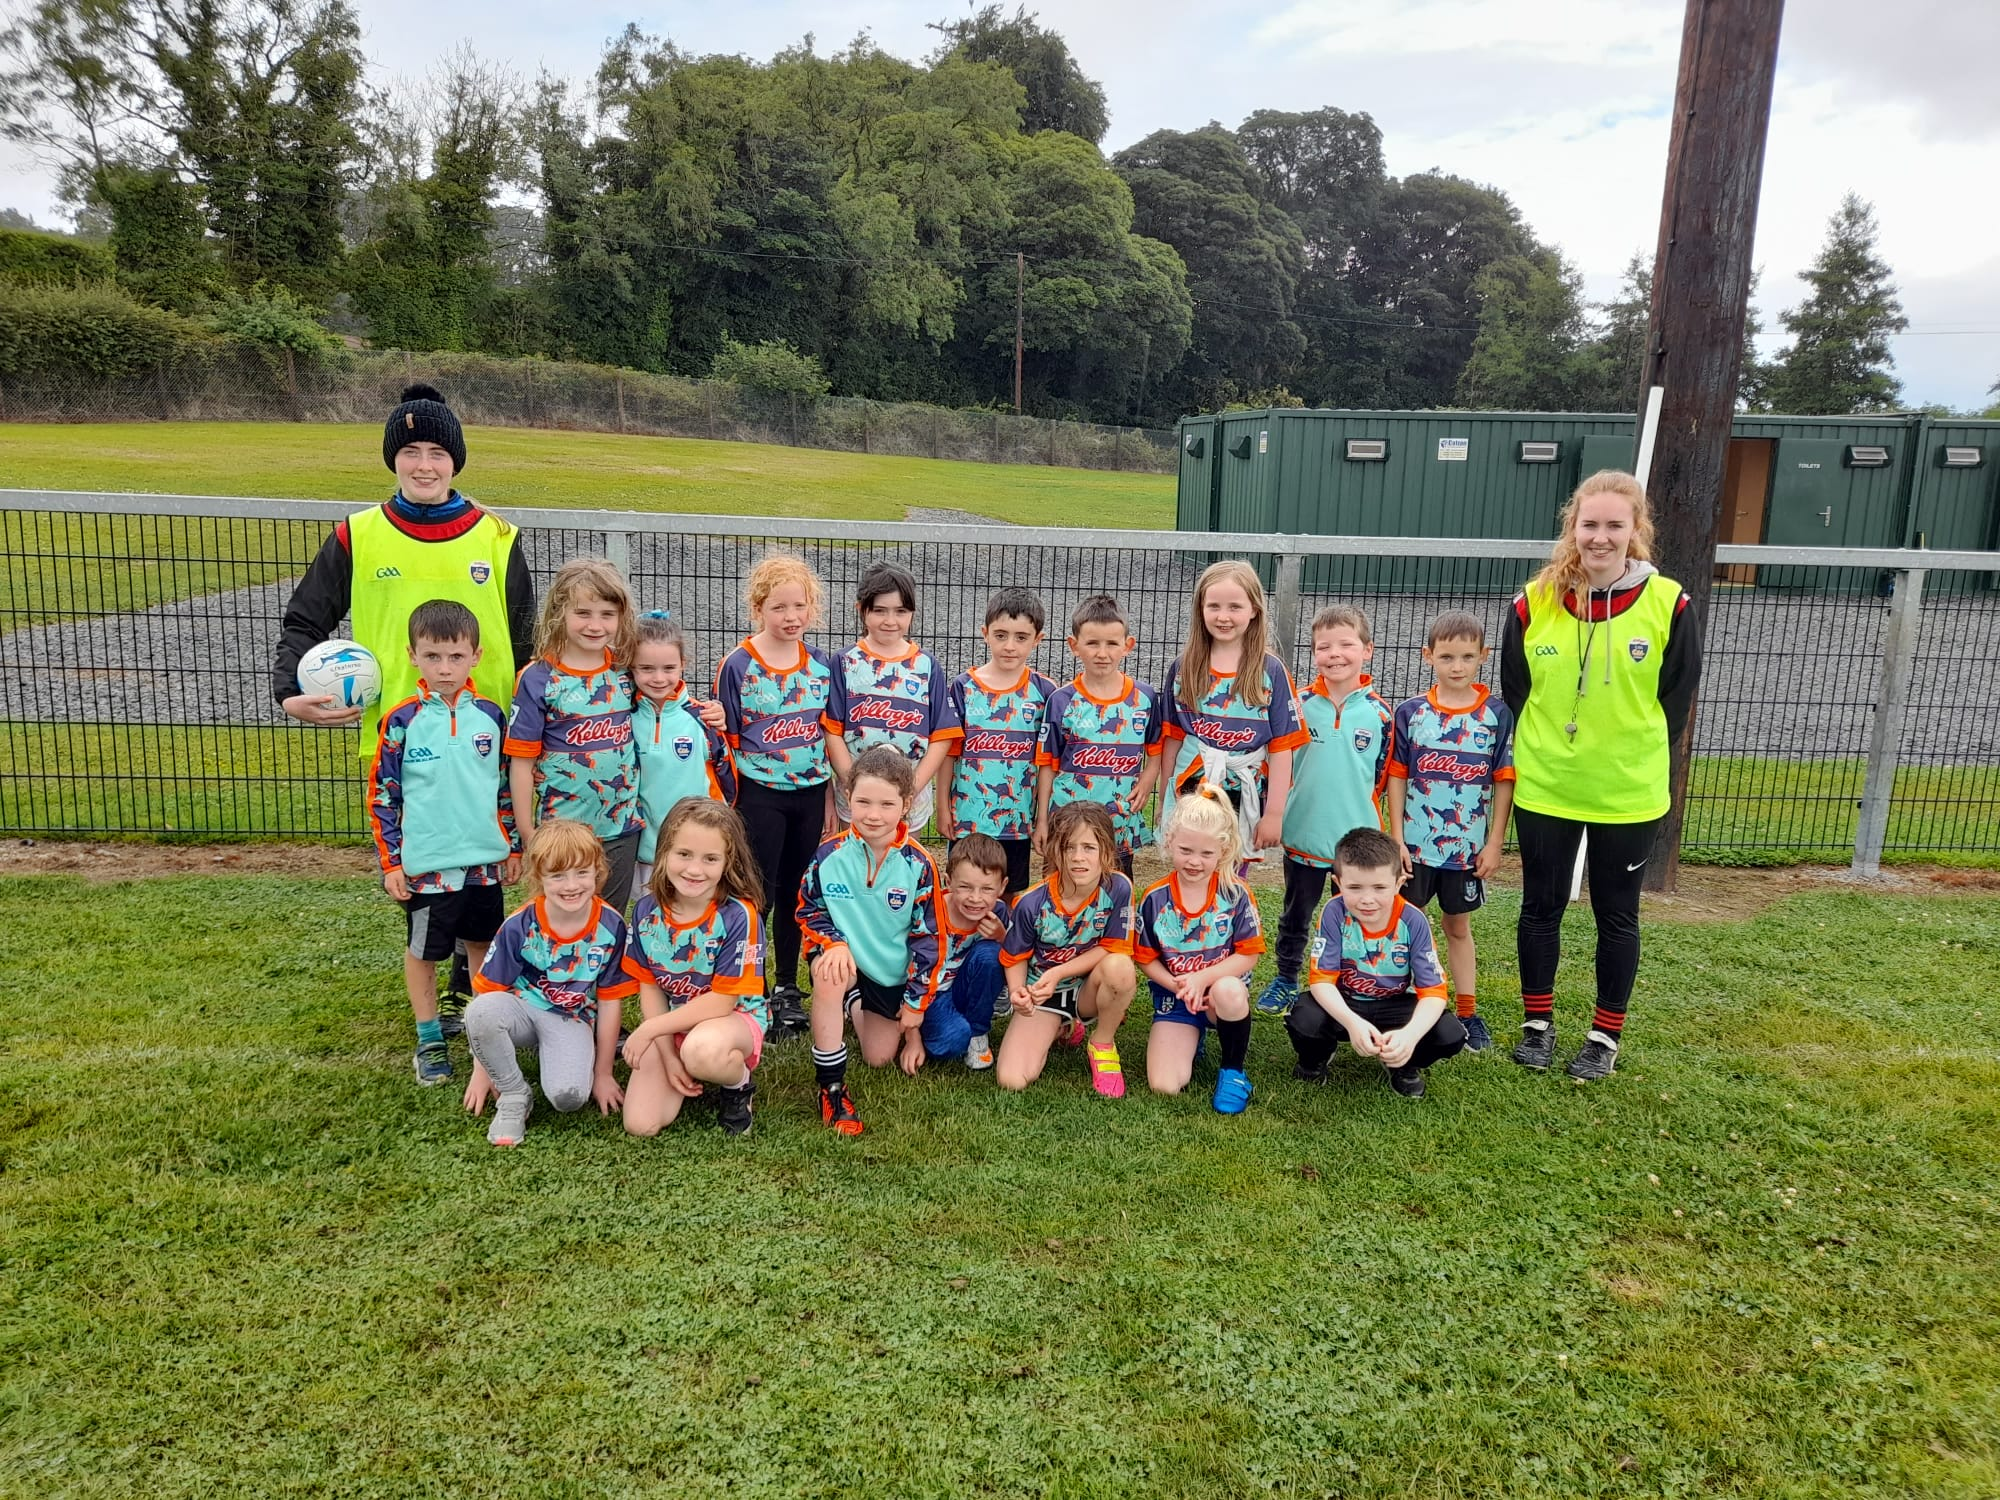 After Ballybay and Magheracloone, Cul Camps head to Aghabog, Donaghmoyne and Cremartin for Week 6